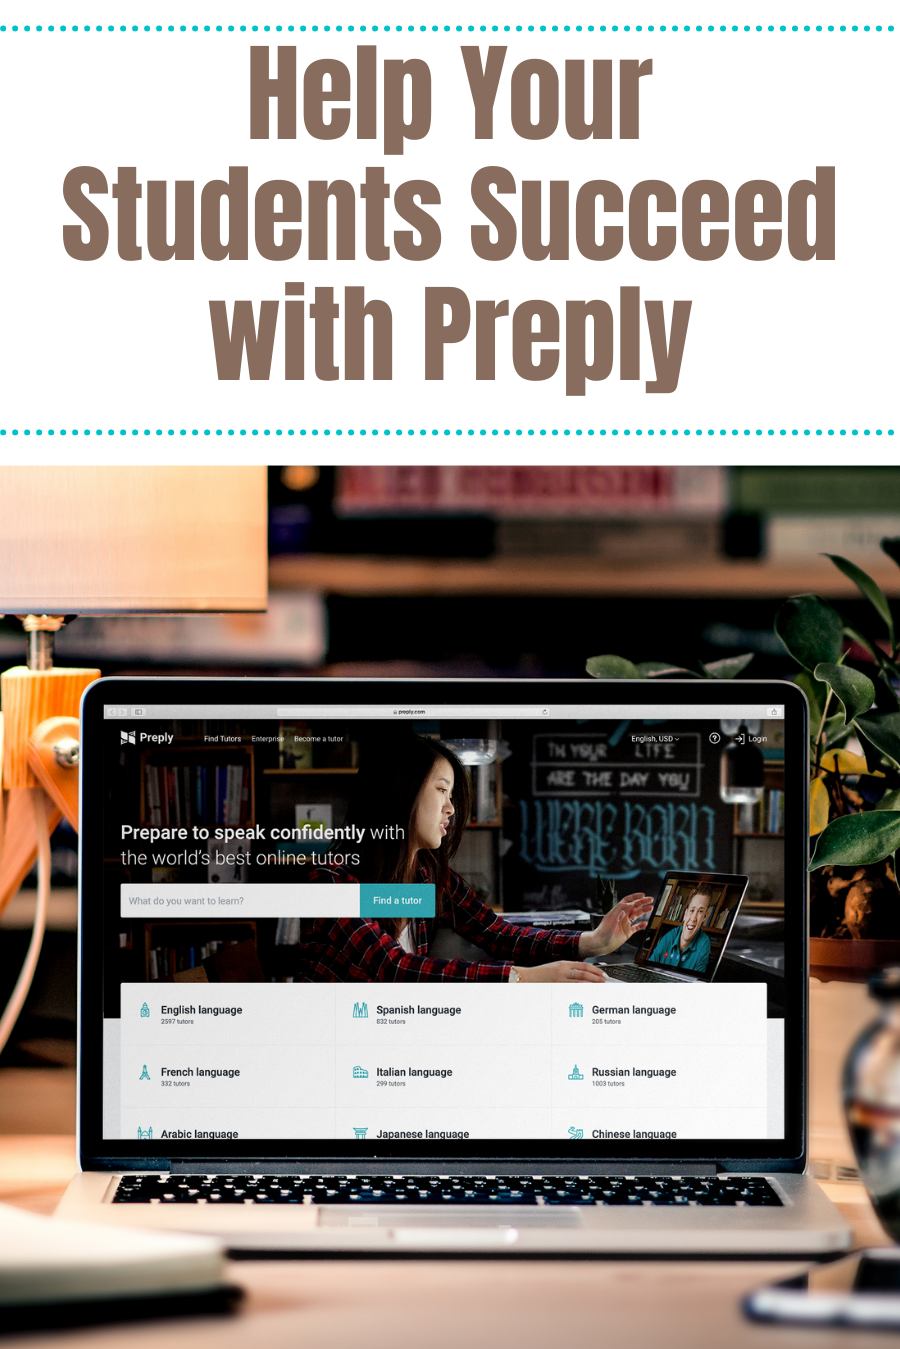 Help Your Students Succeed with Preply